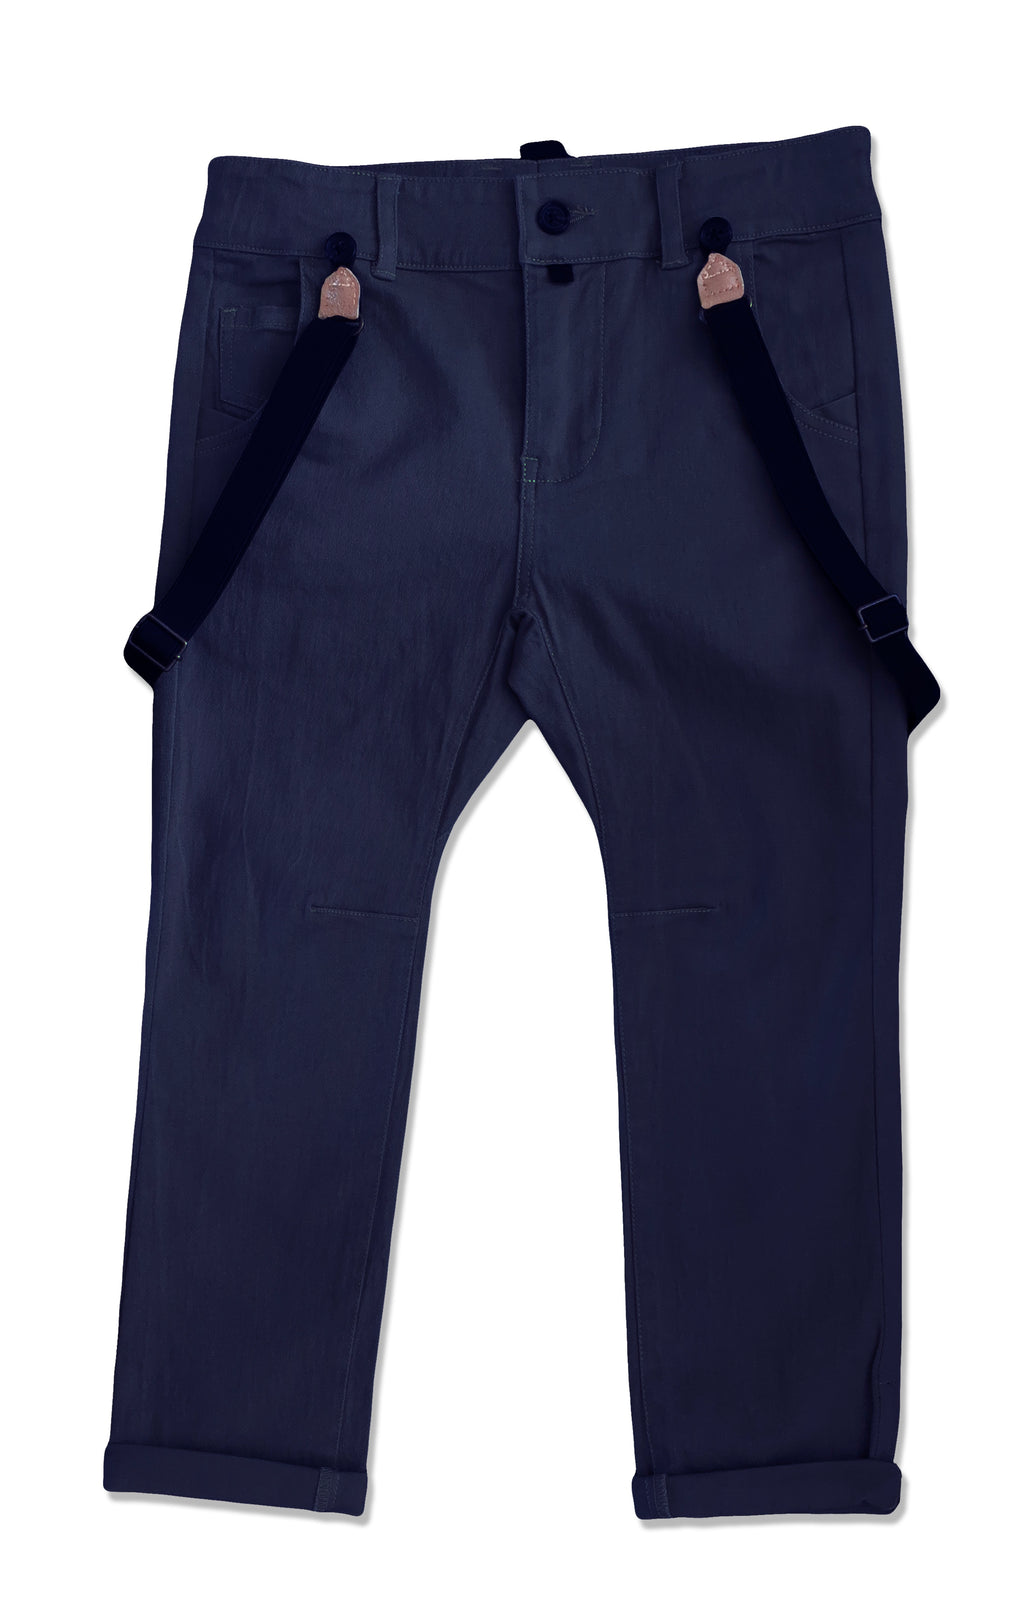 front image of boys navy stretch cotton woven pants with suspenders